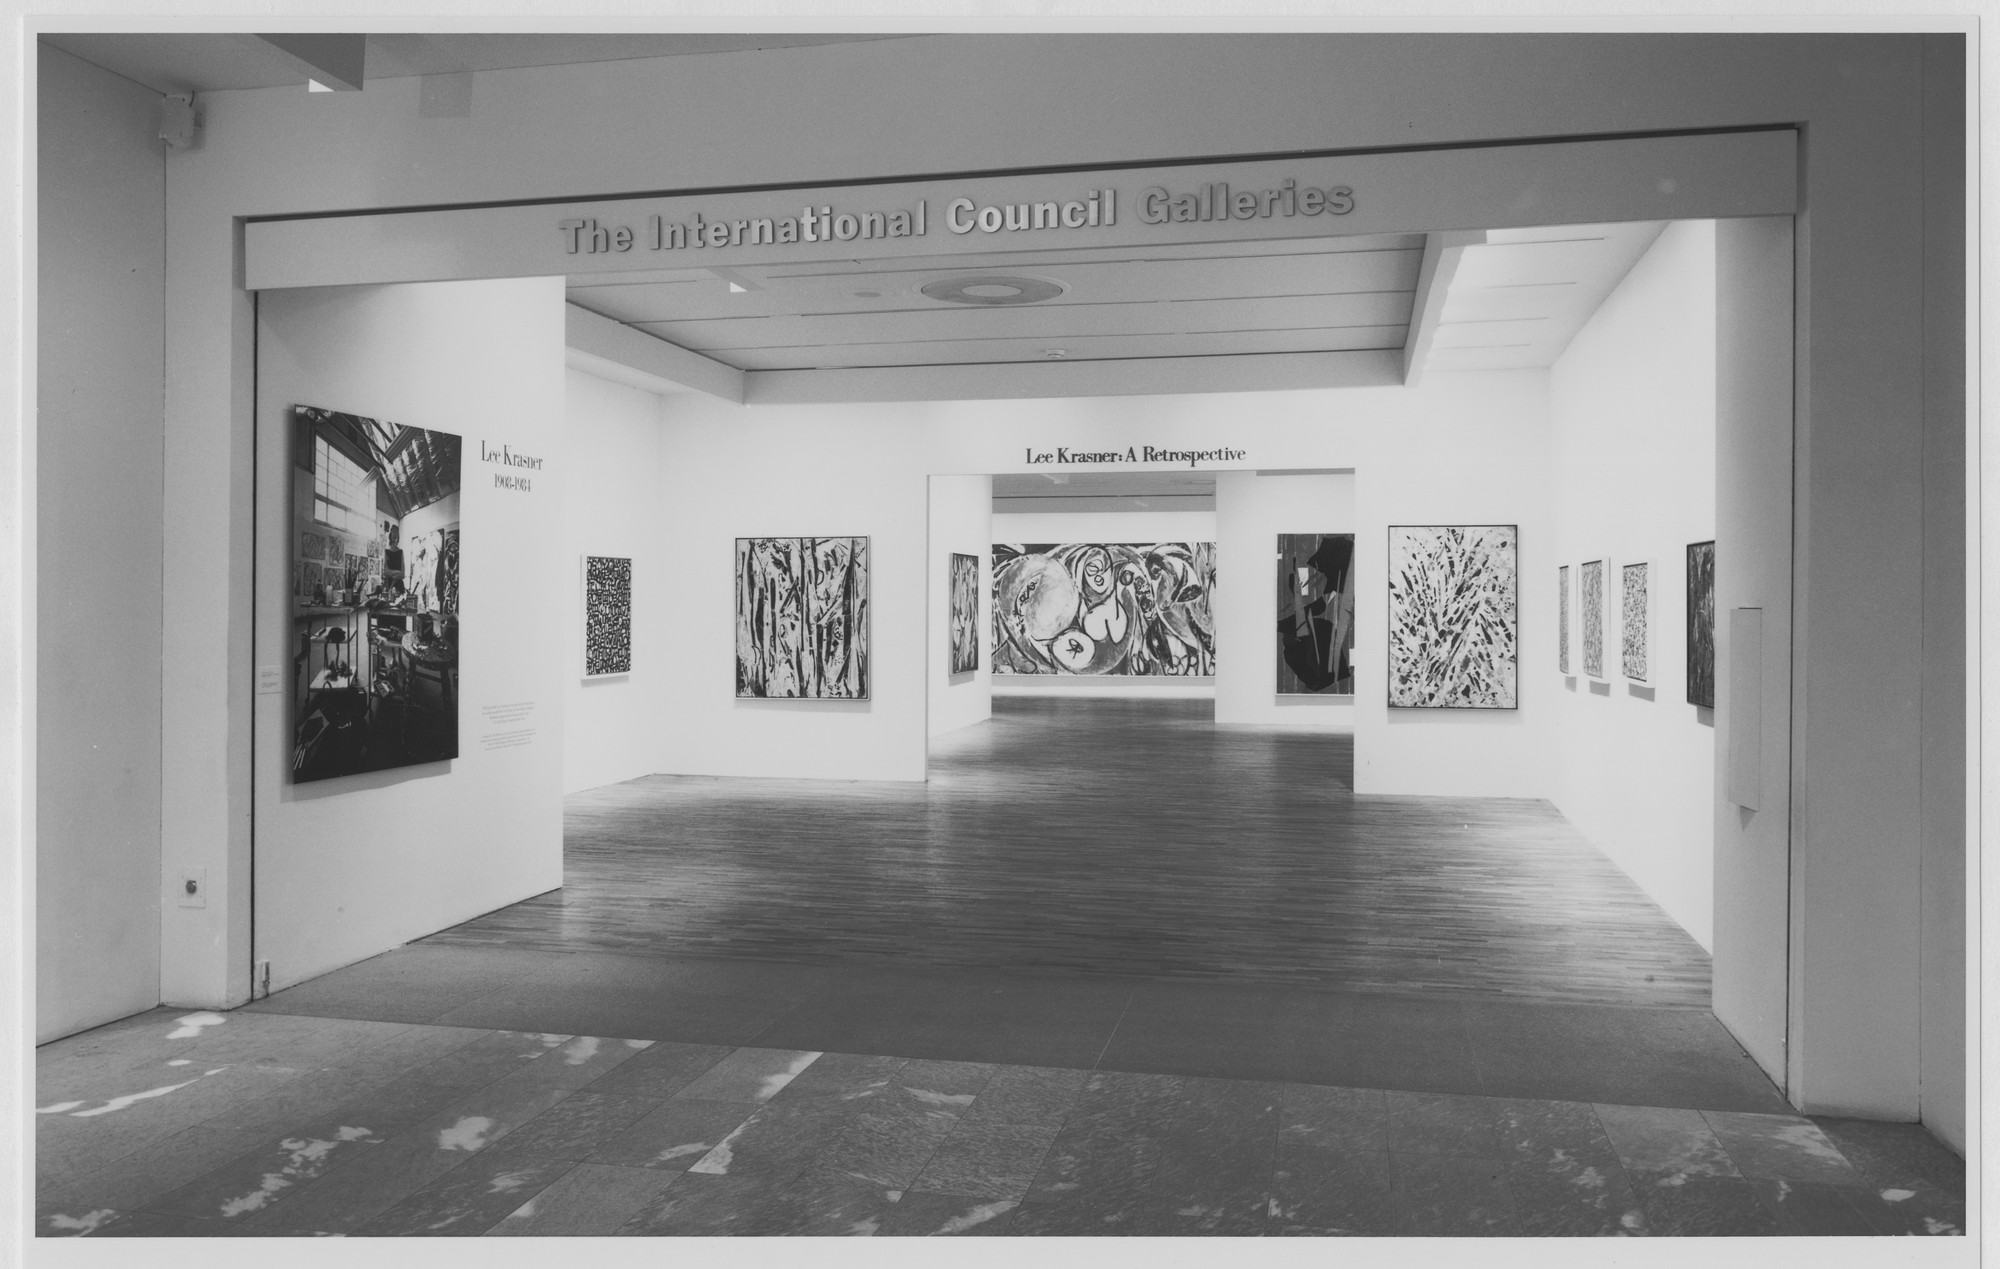 "Installation view of the exhibition, ""Lee Krasner: A Retrospective"" December 20, 1984–February 12, 1985. Photographic Archive. The Museum of Modern Art Archives, New York. IN1385.1. Photograph by Mali Olatunji."